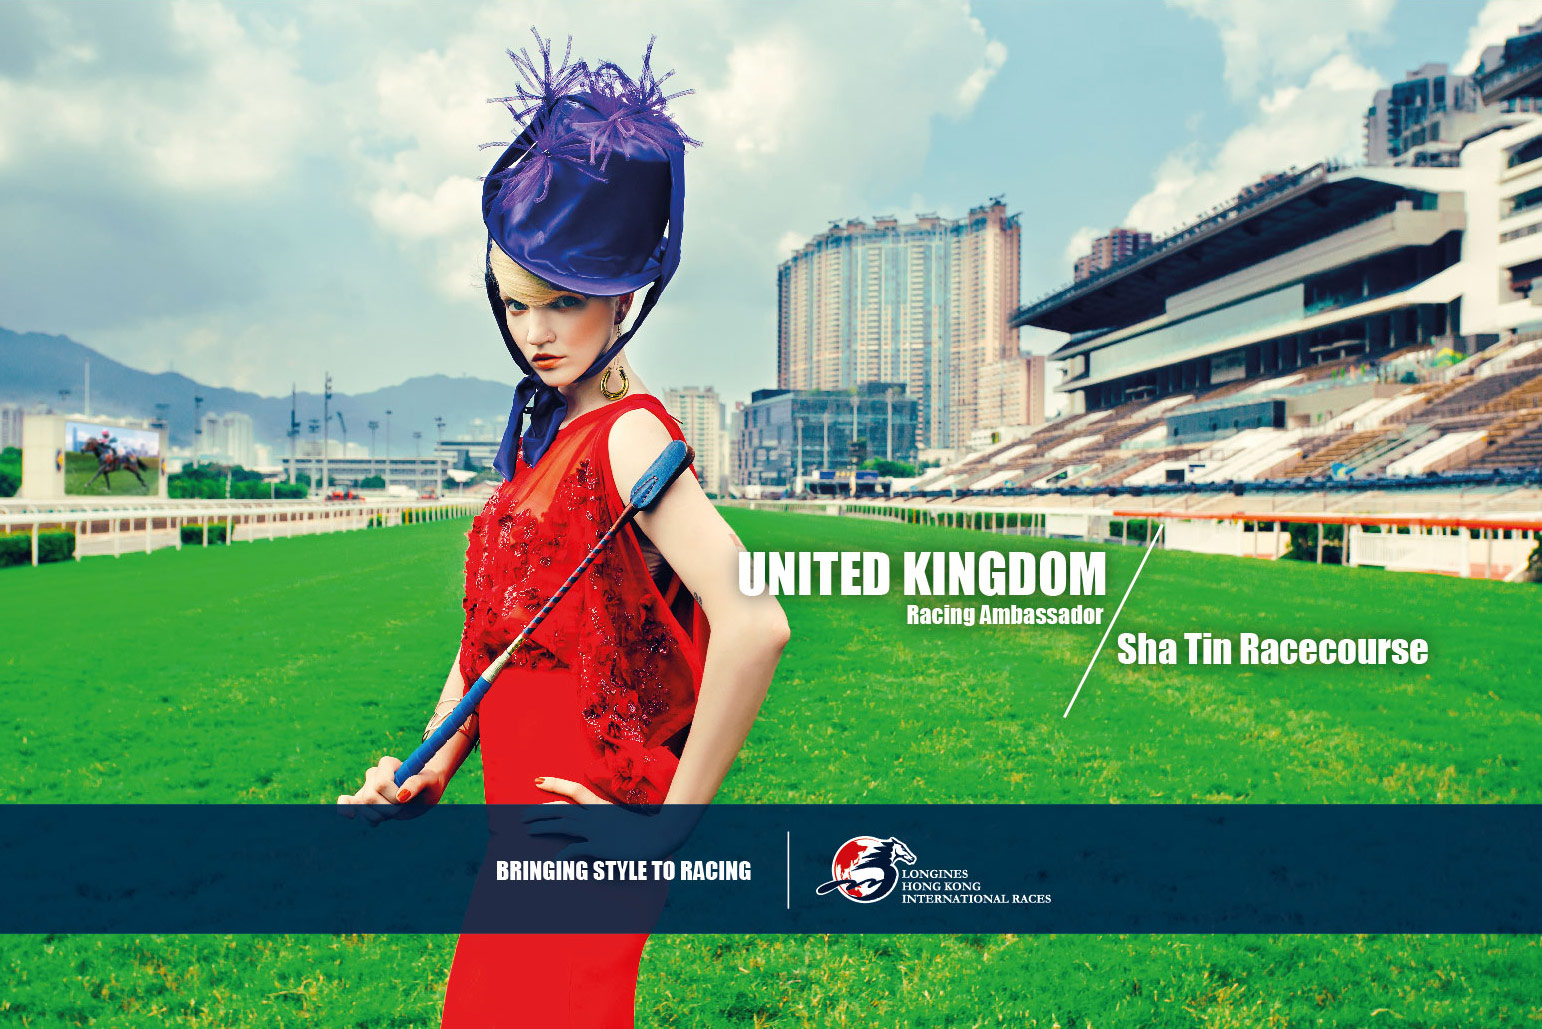 United-Kingdom-Racing-Ambassador---Shatin-Racecourse-(Turf)